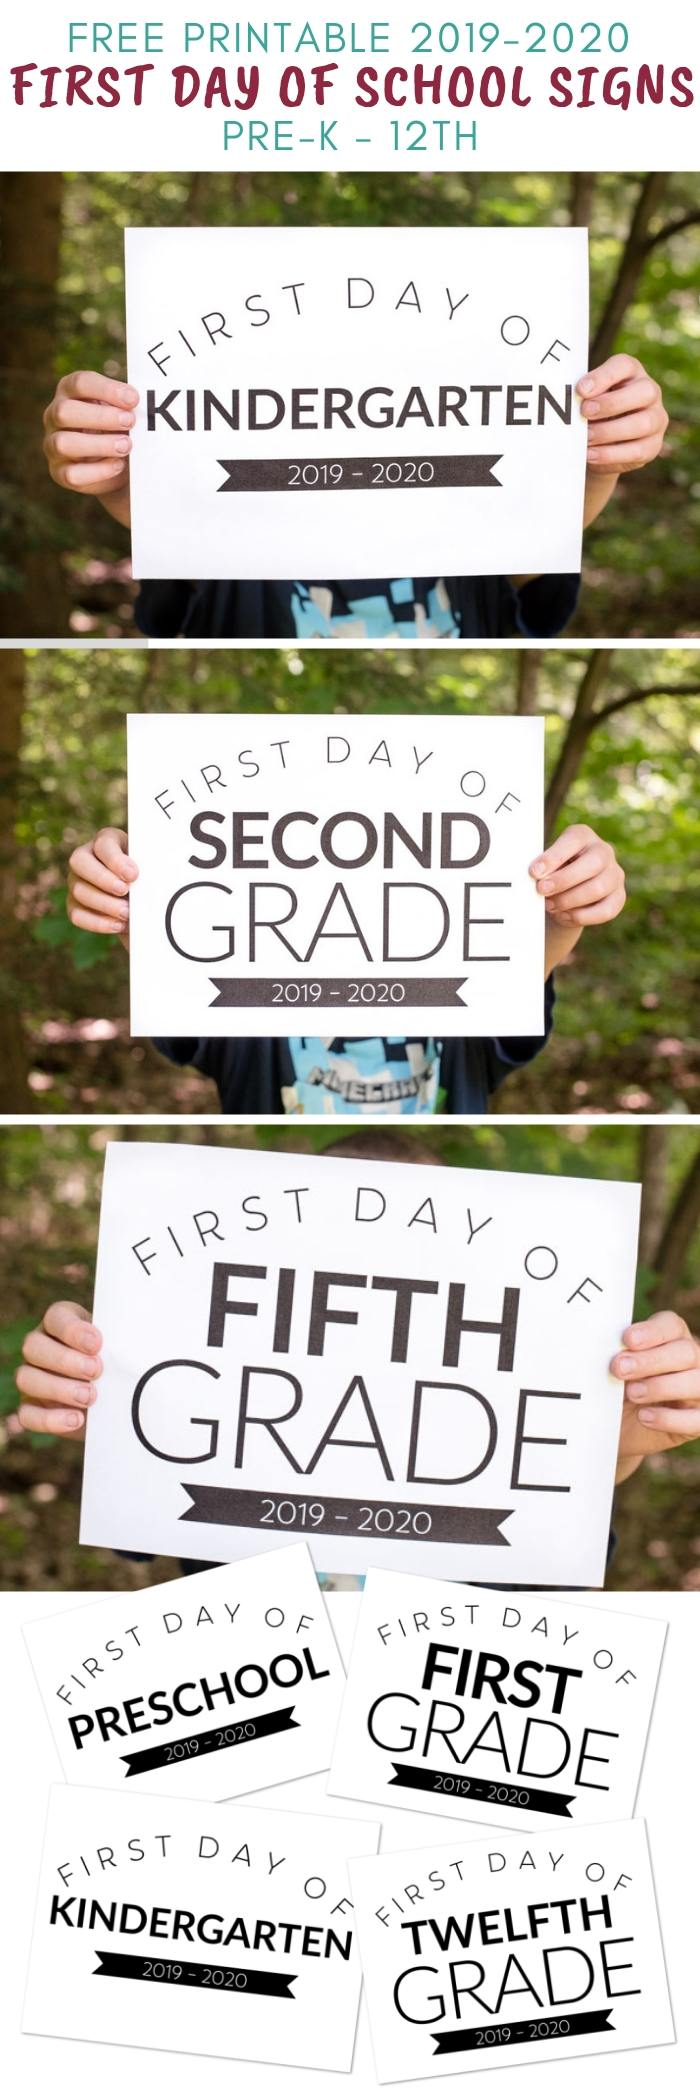 photograph about First Day of School Sign Printable known as Cost-free Printable Initial Working day of University Symptoms for All Grades